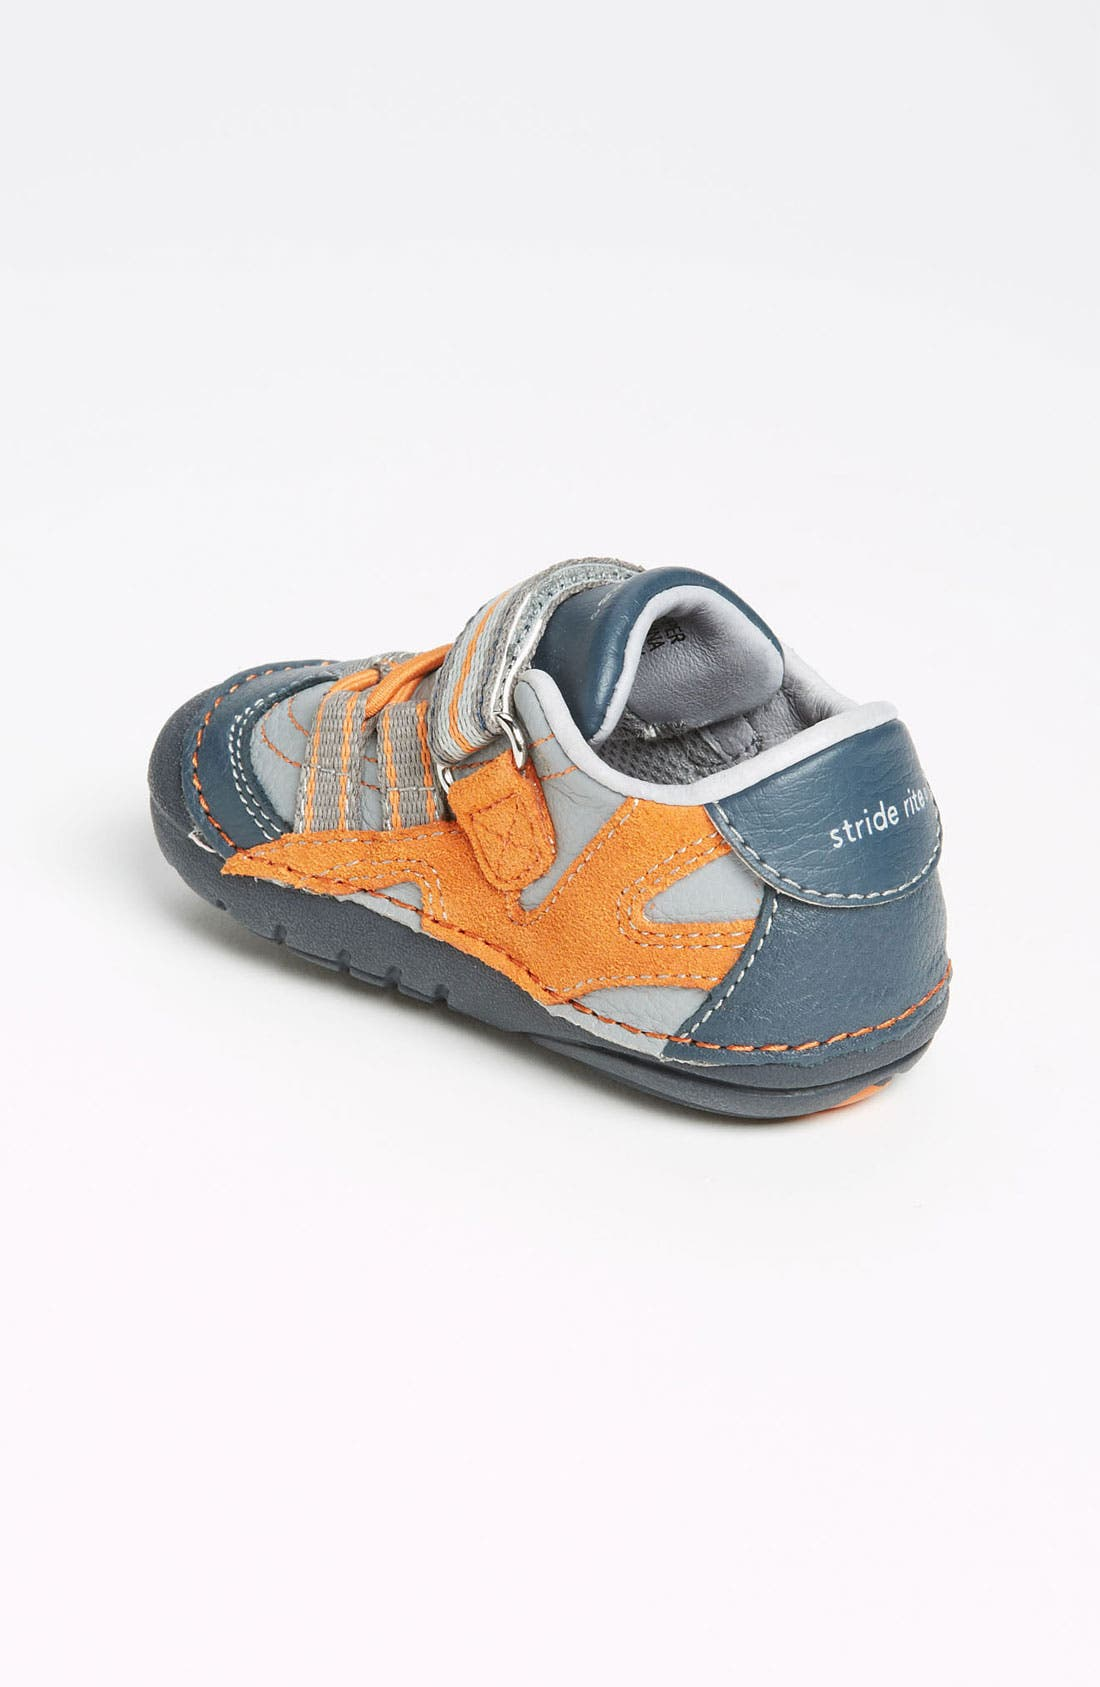 Alternate Image 2  - Stride Rite 'Leo' Sneaker (Baby & Walker)